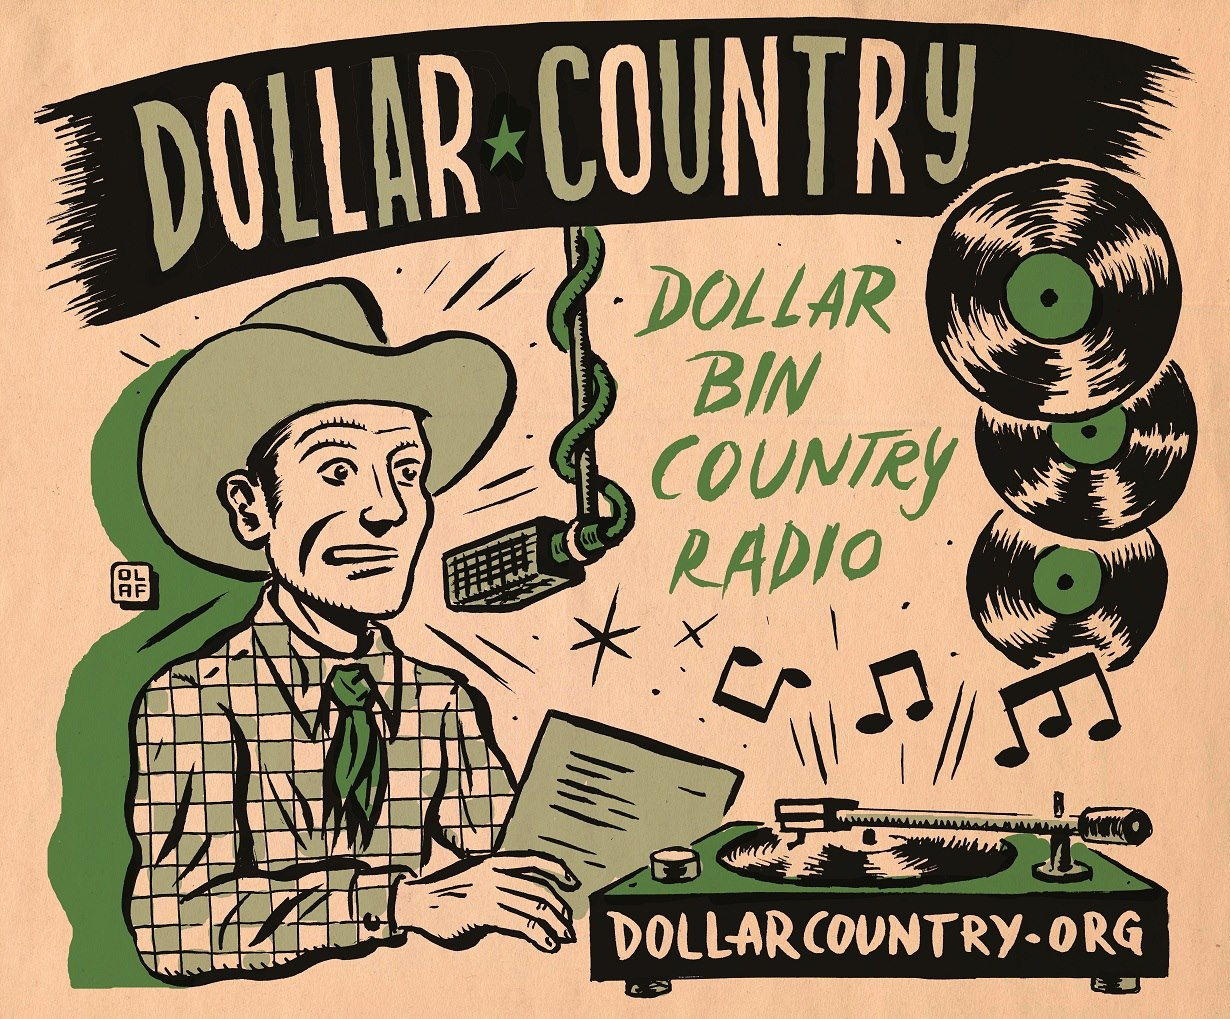 Cool art by Olaf Jens for  dollarcountry.org